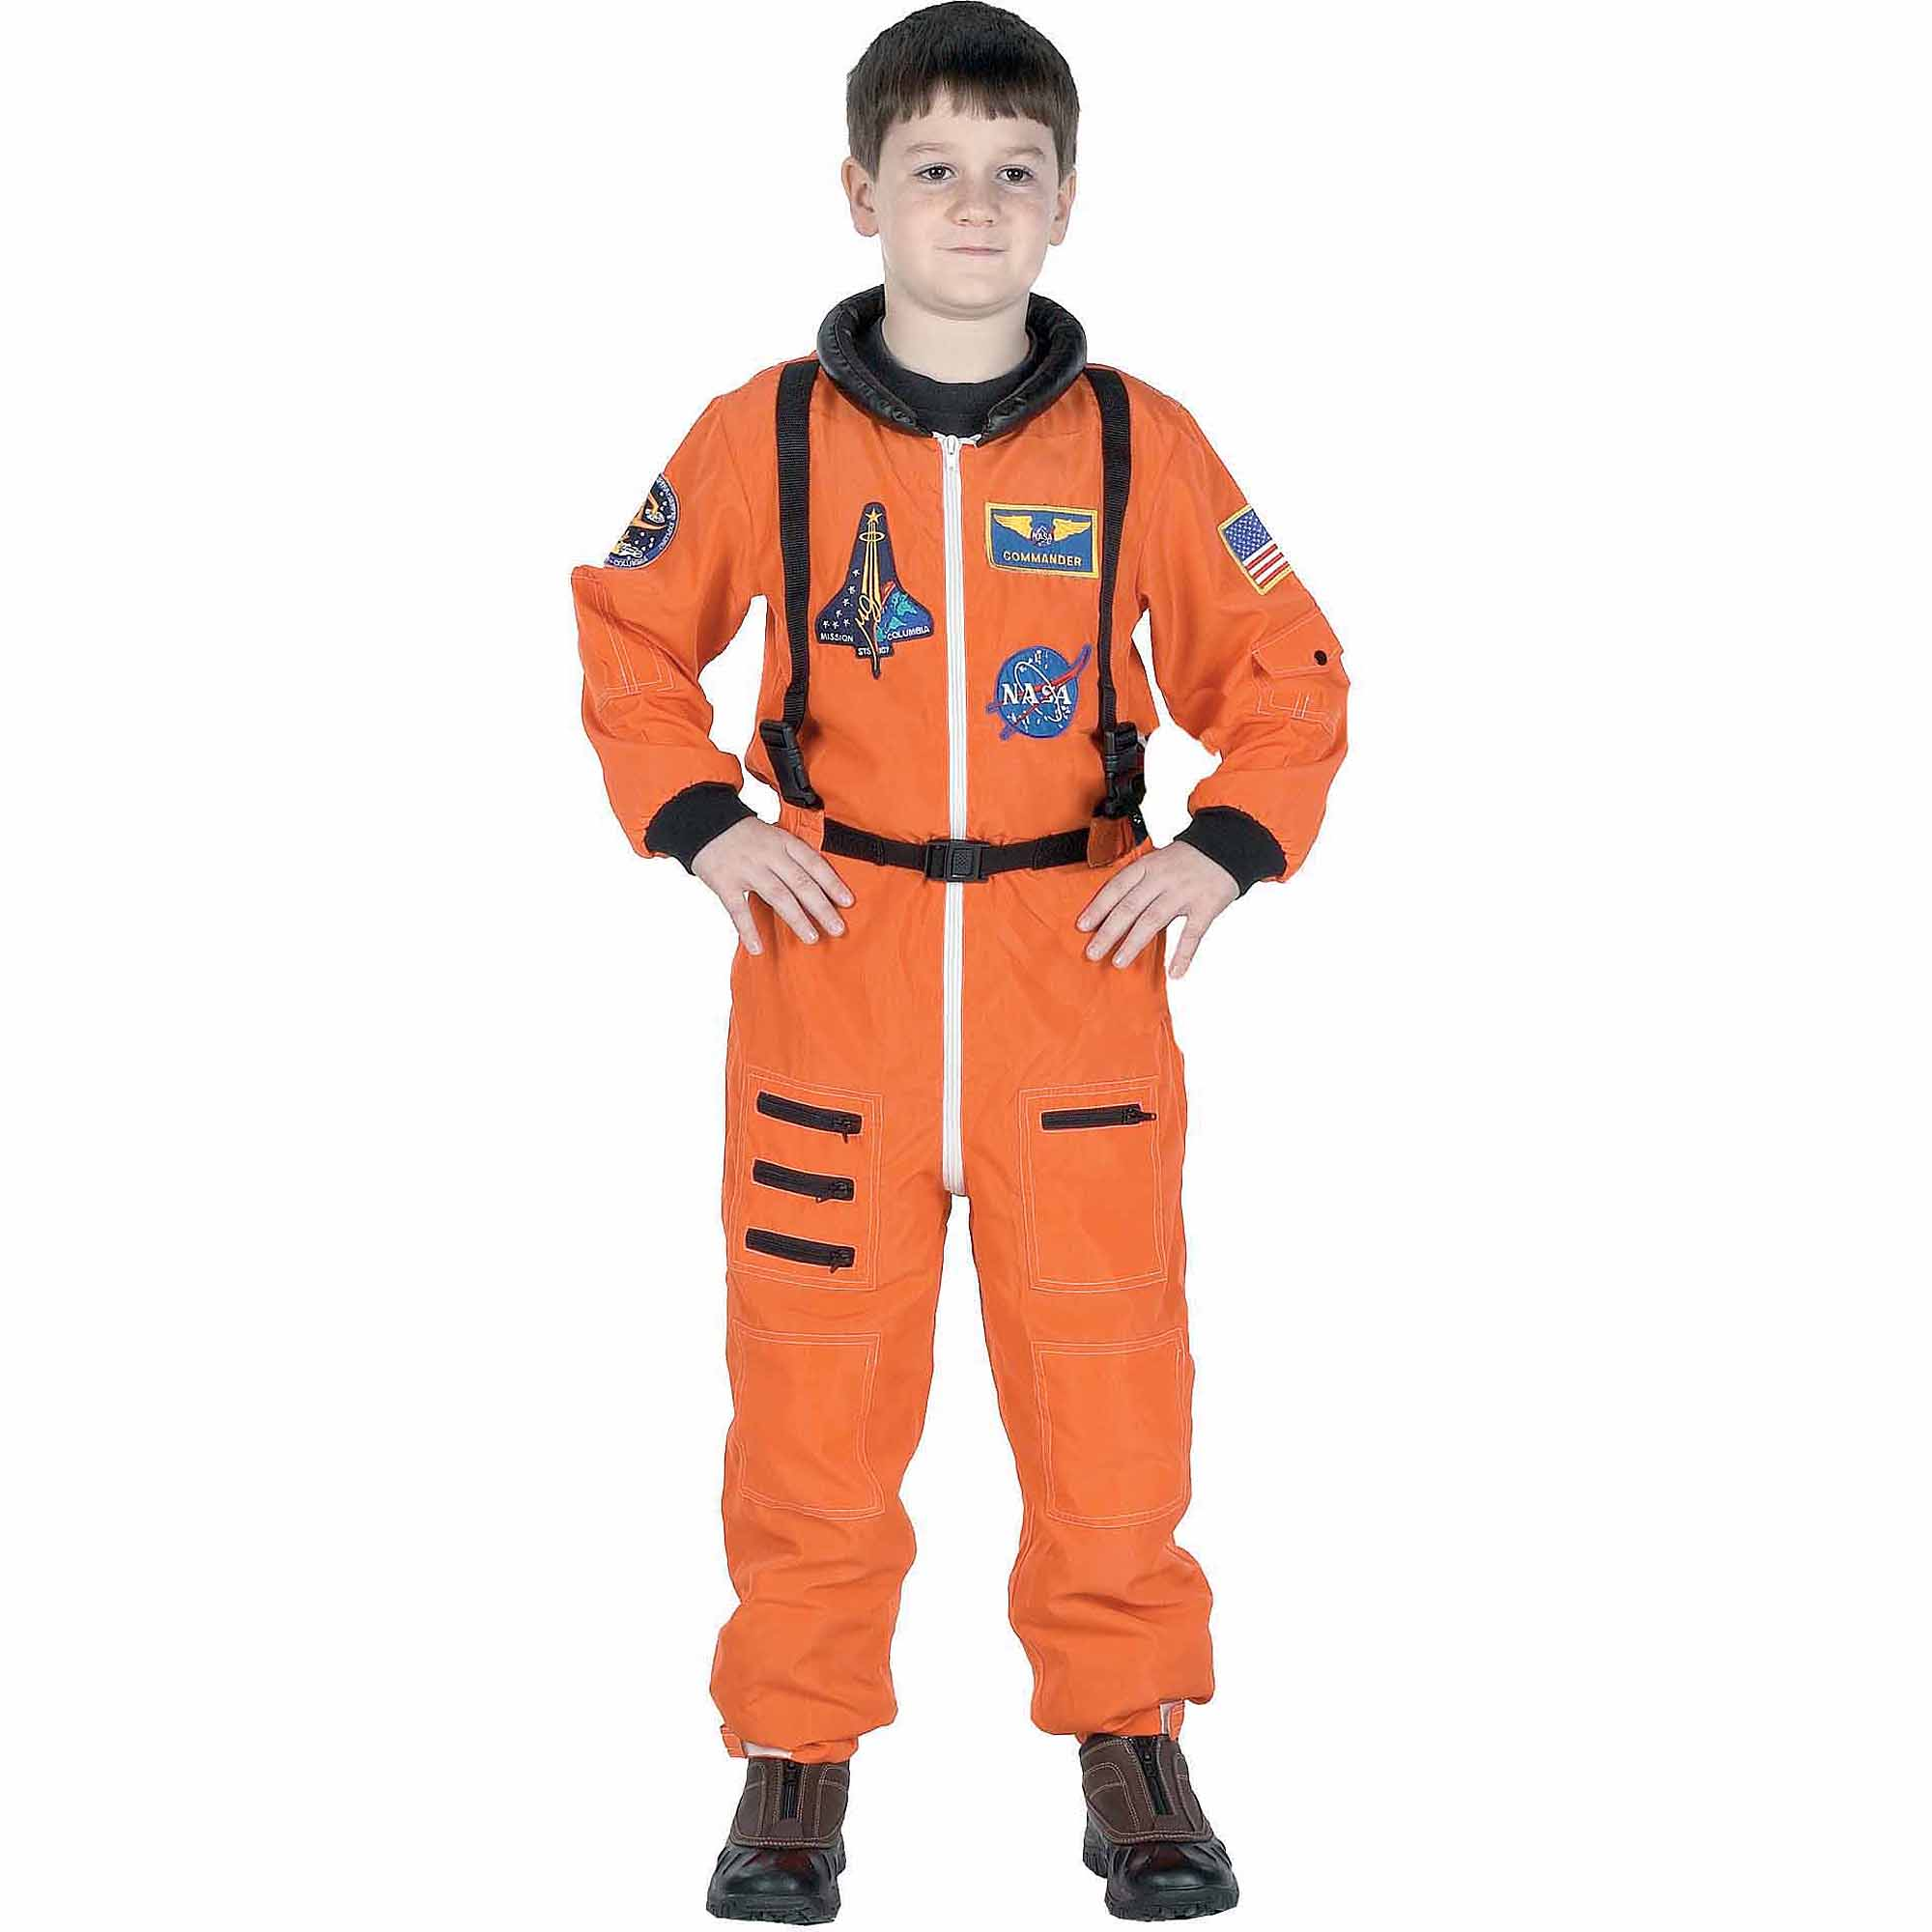 Orange Astronaut Suit Child Halloween Costume